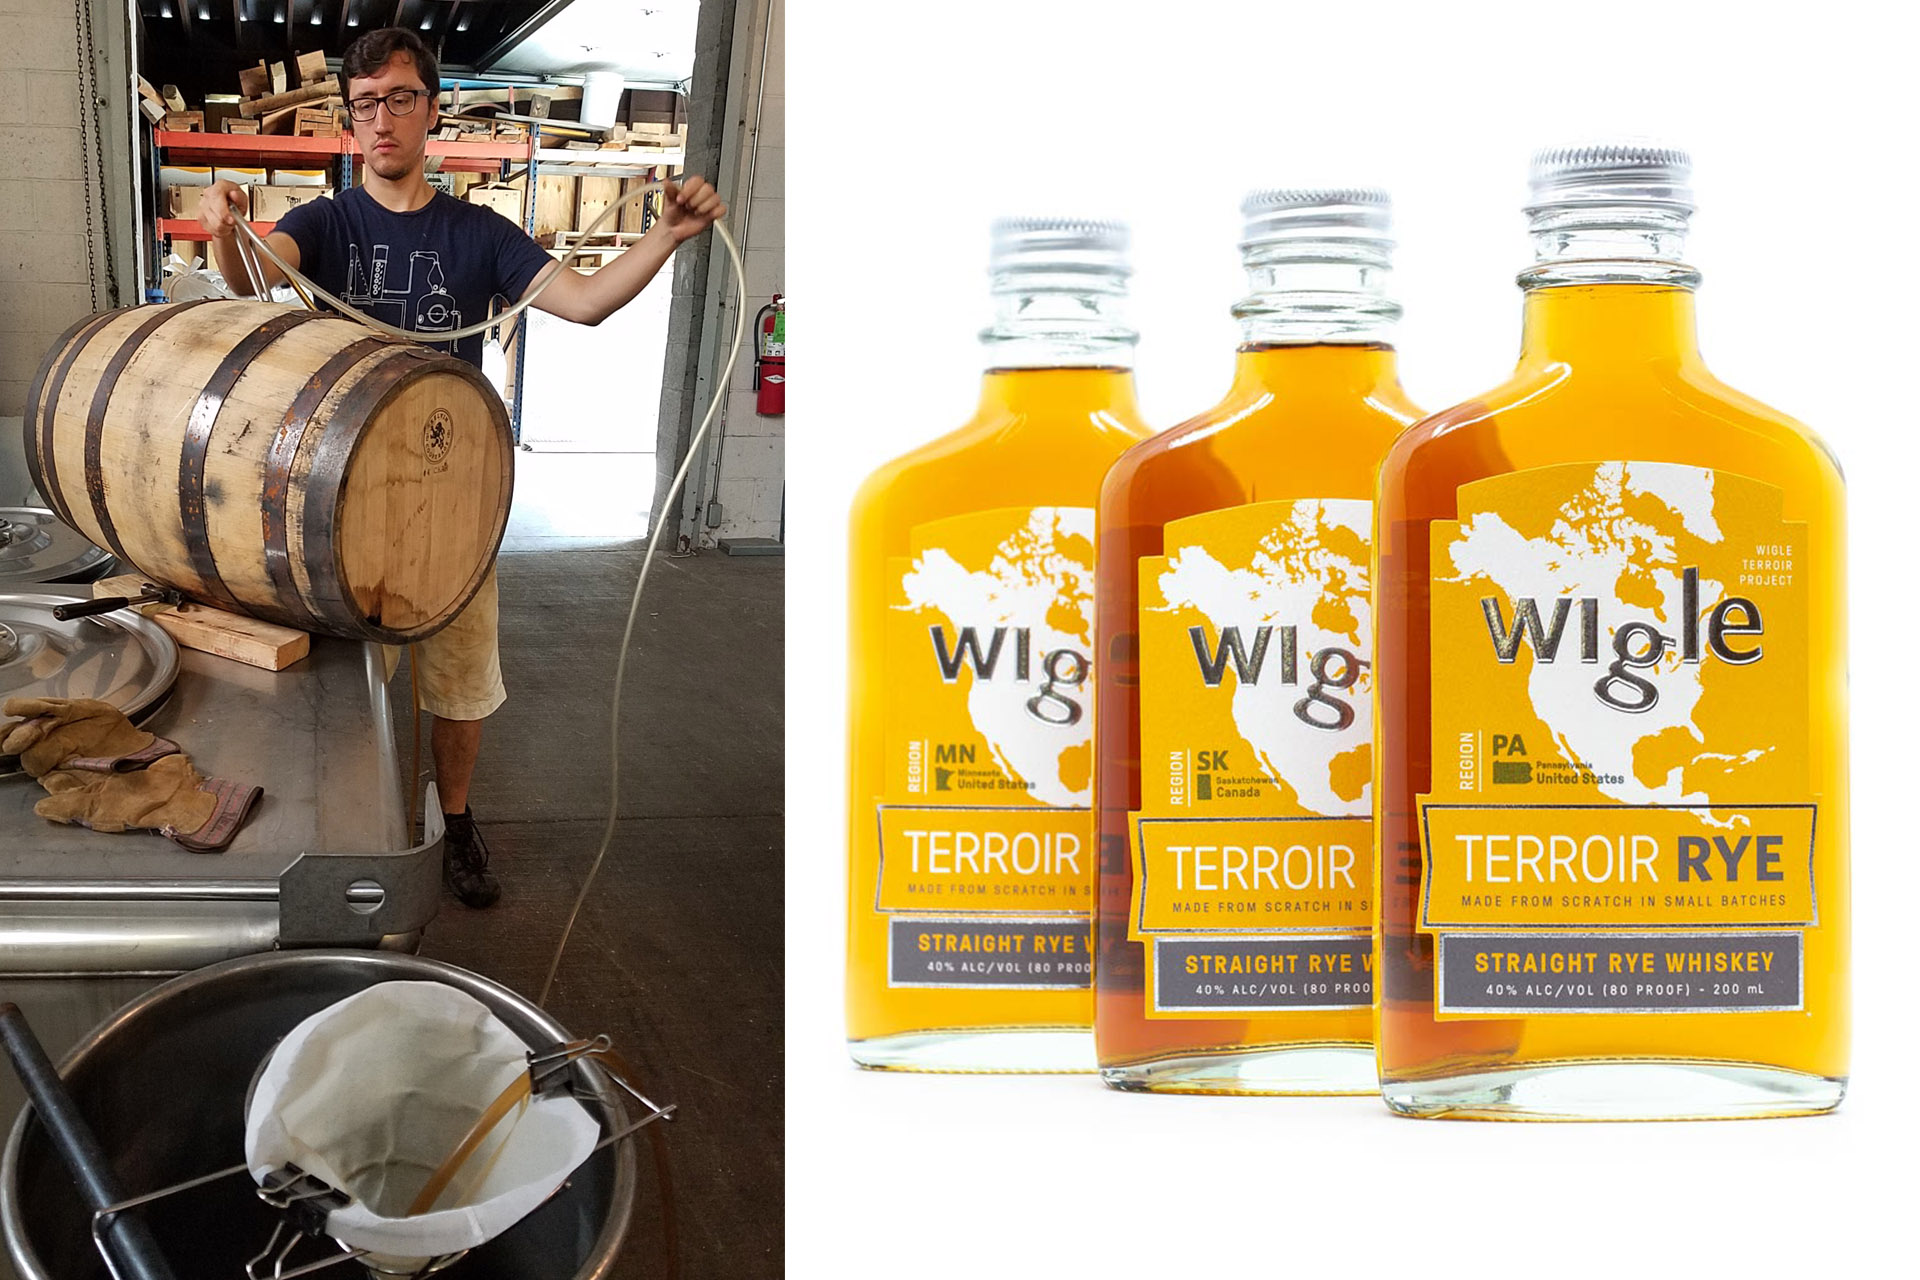 Man filling a barrel and right image of three bottles of whiskey